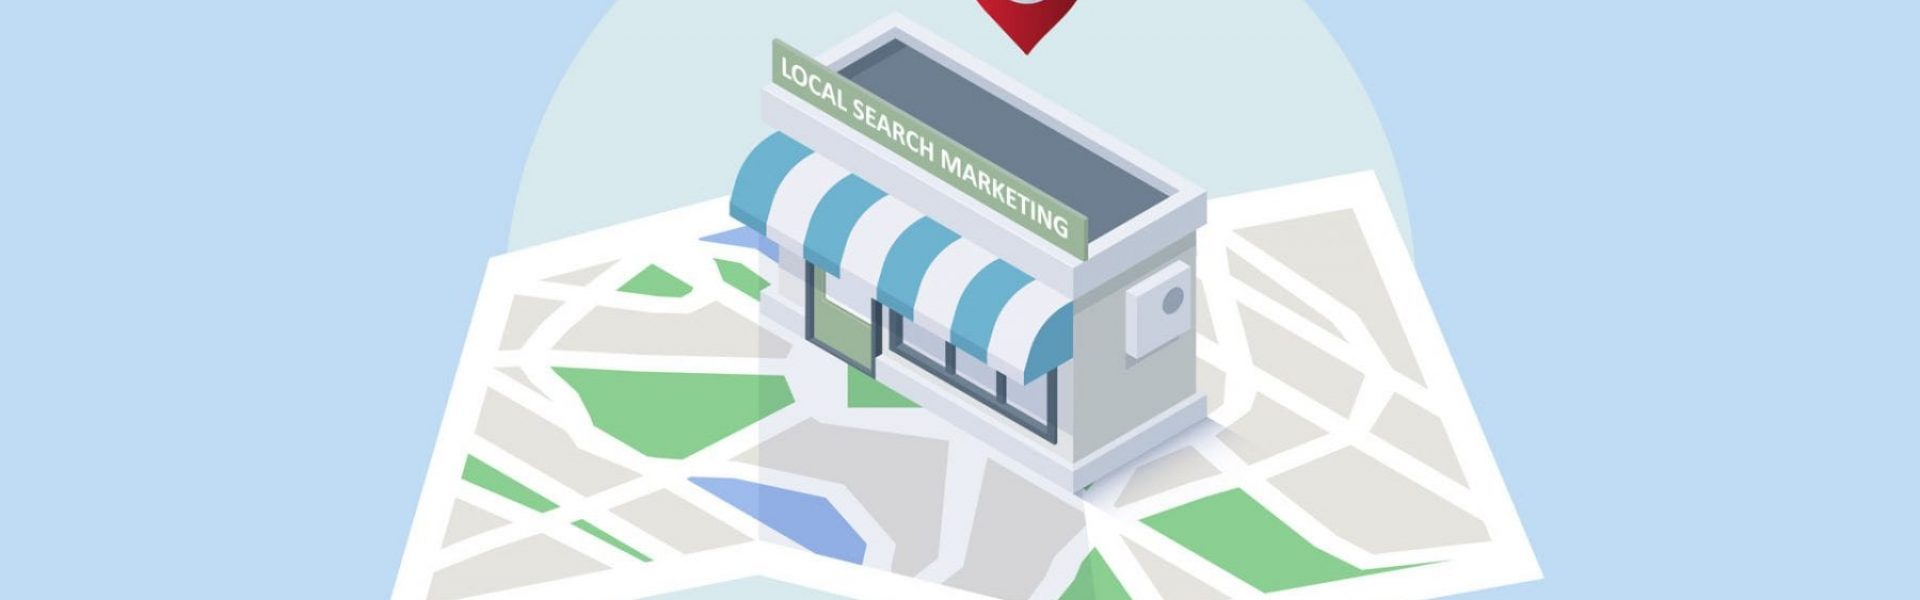 4 Tips For Local SEO What Your Business Needs To Know